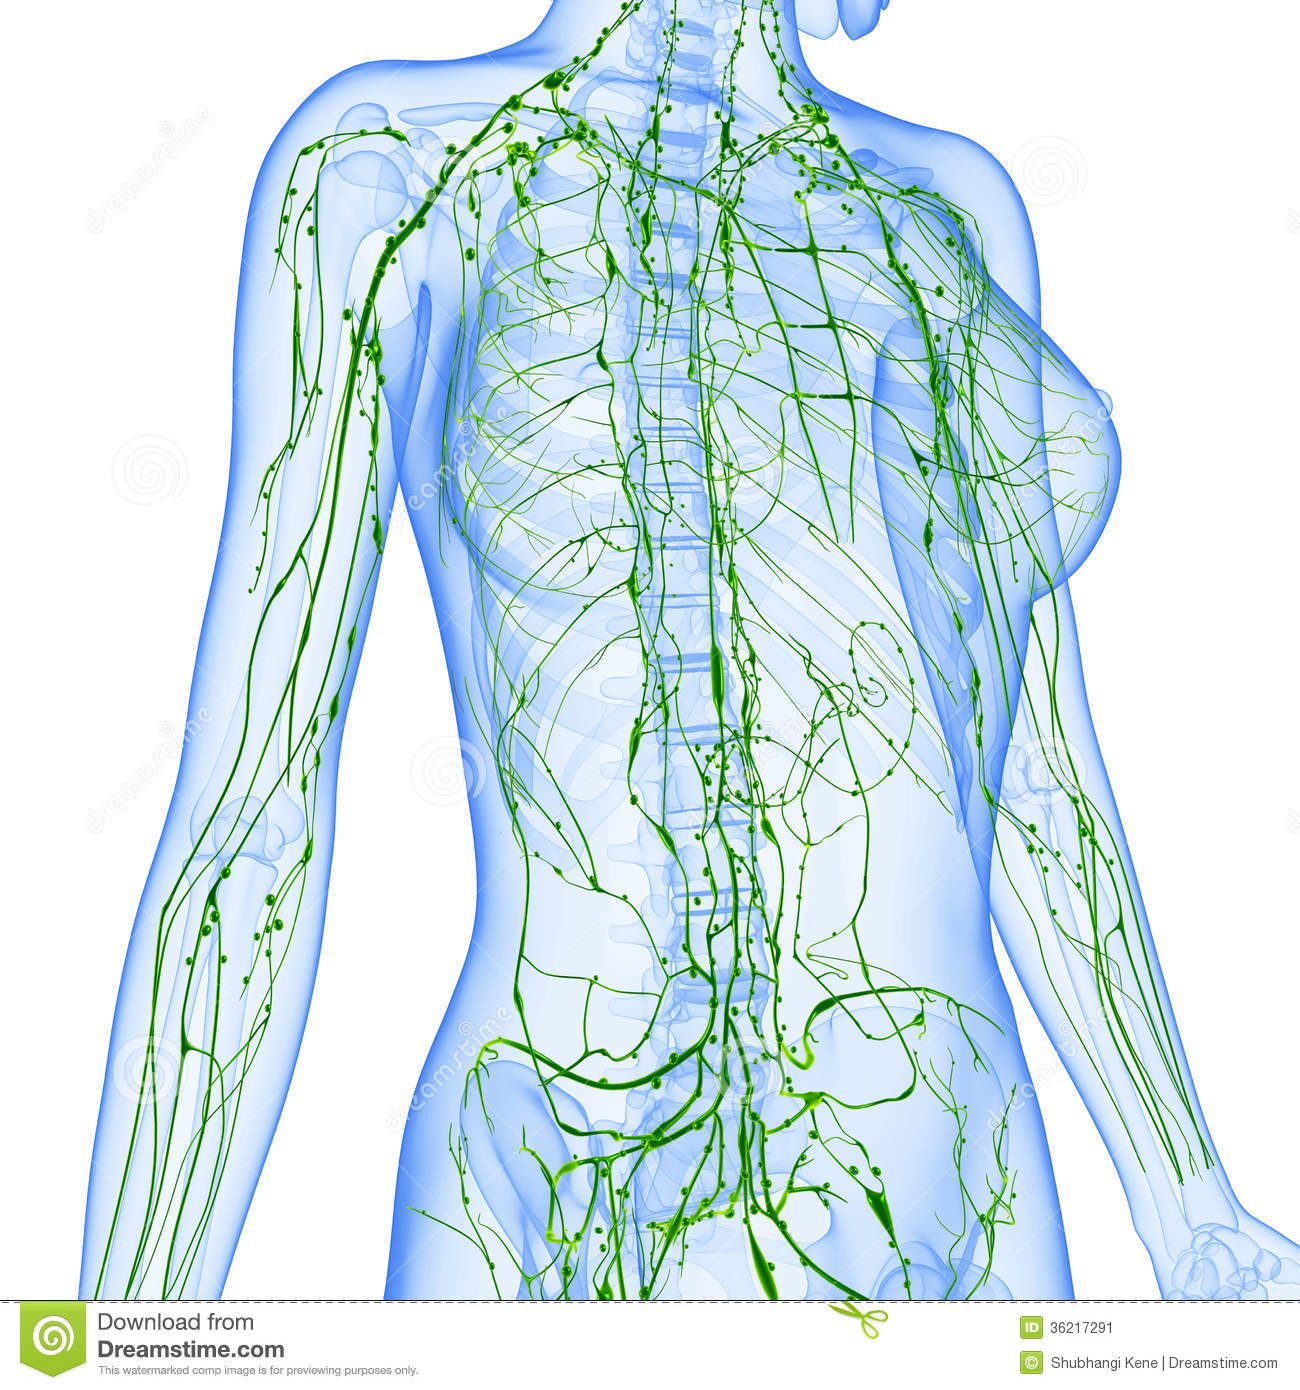 ... anatomy illustration of the Lymphatic system x ray with isolated